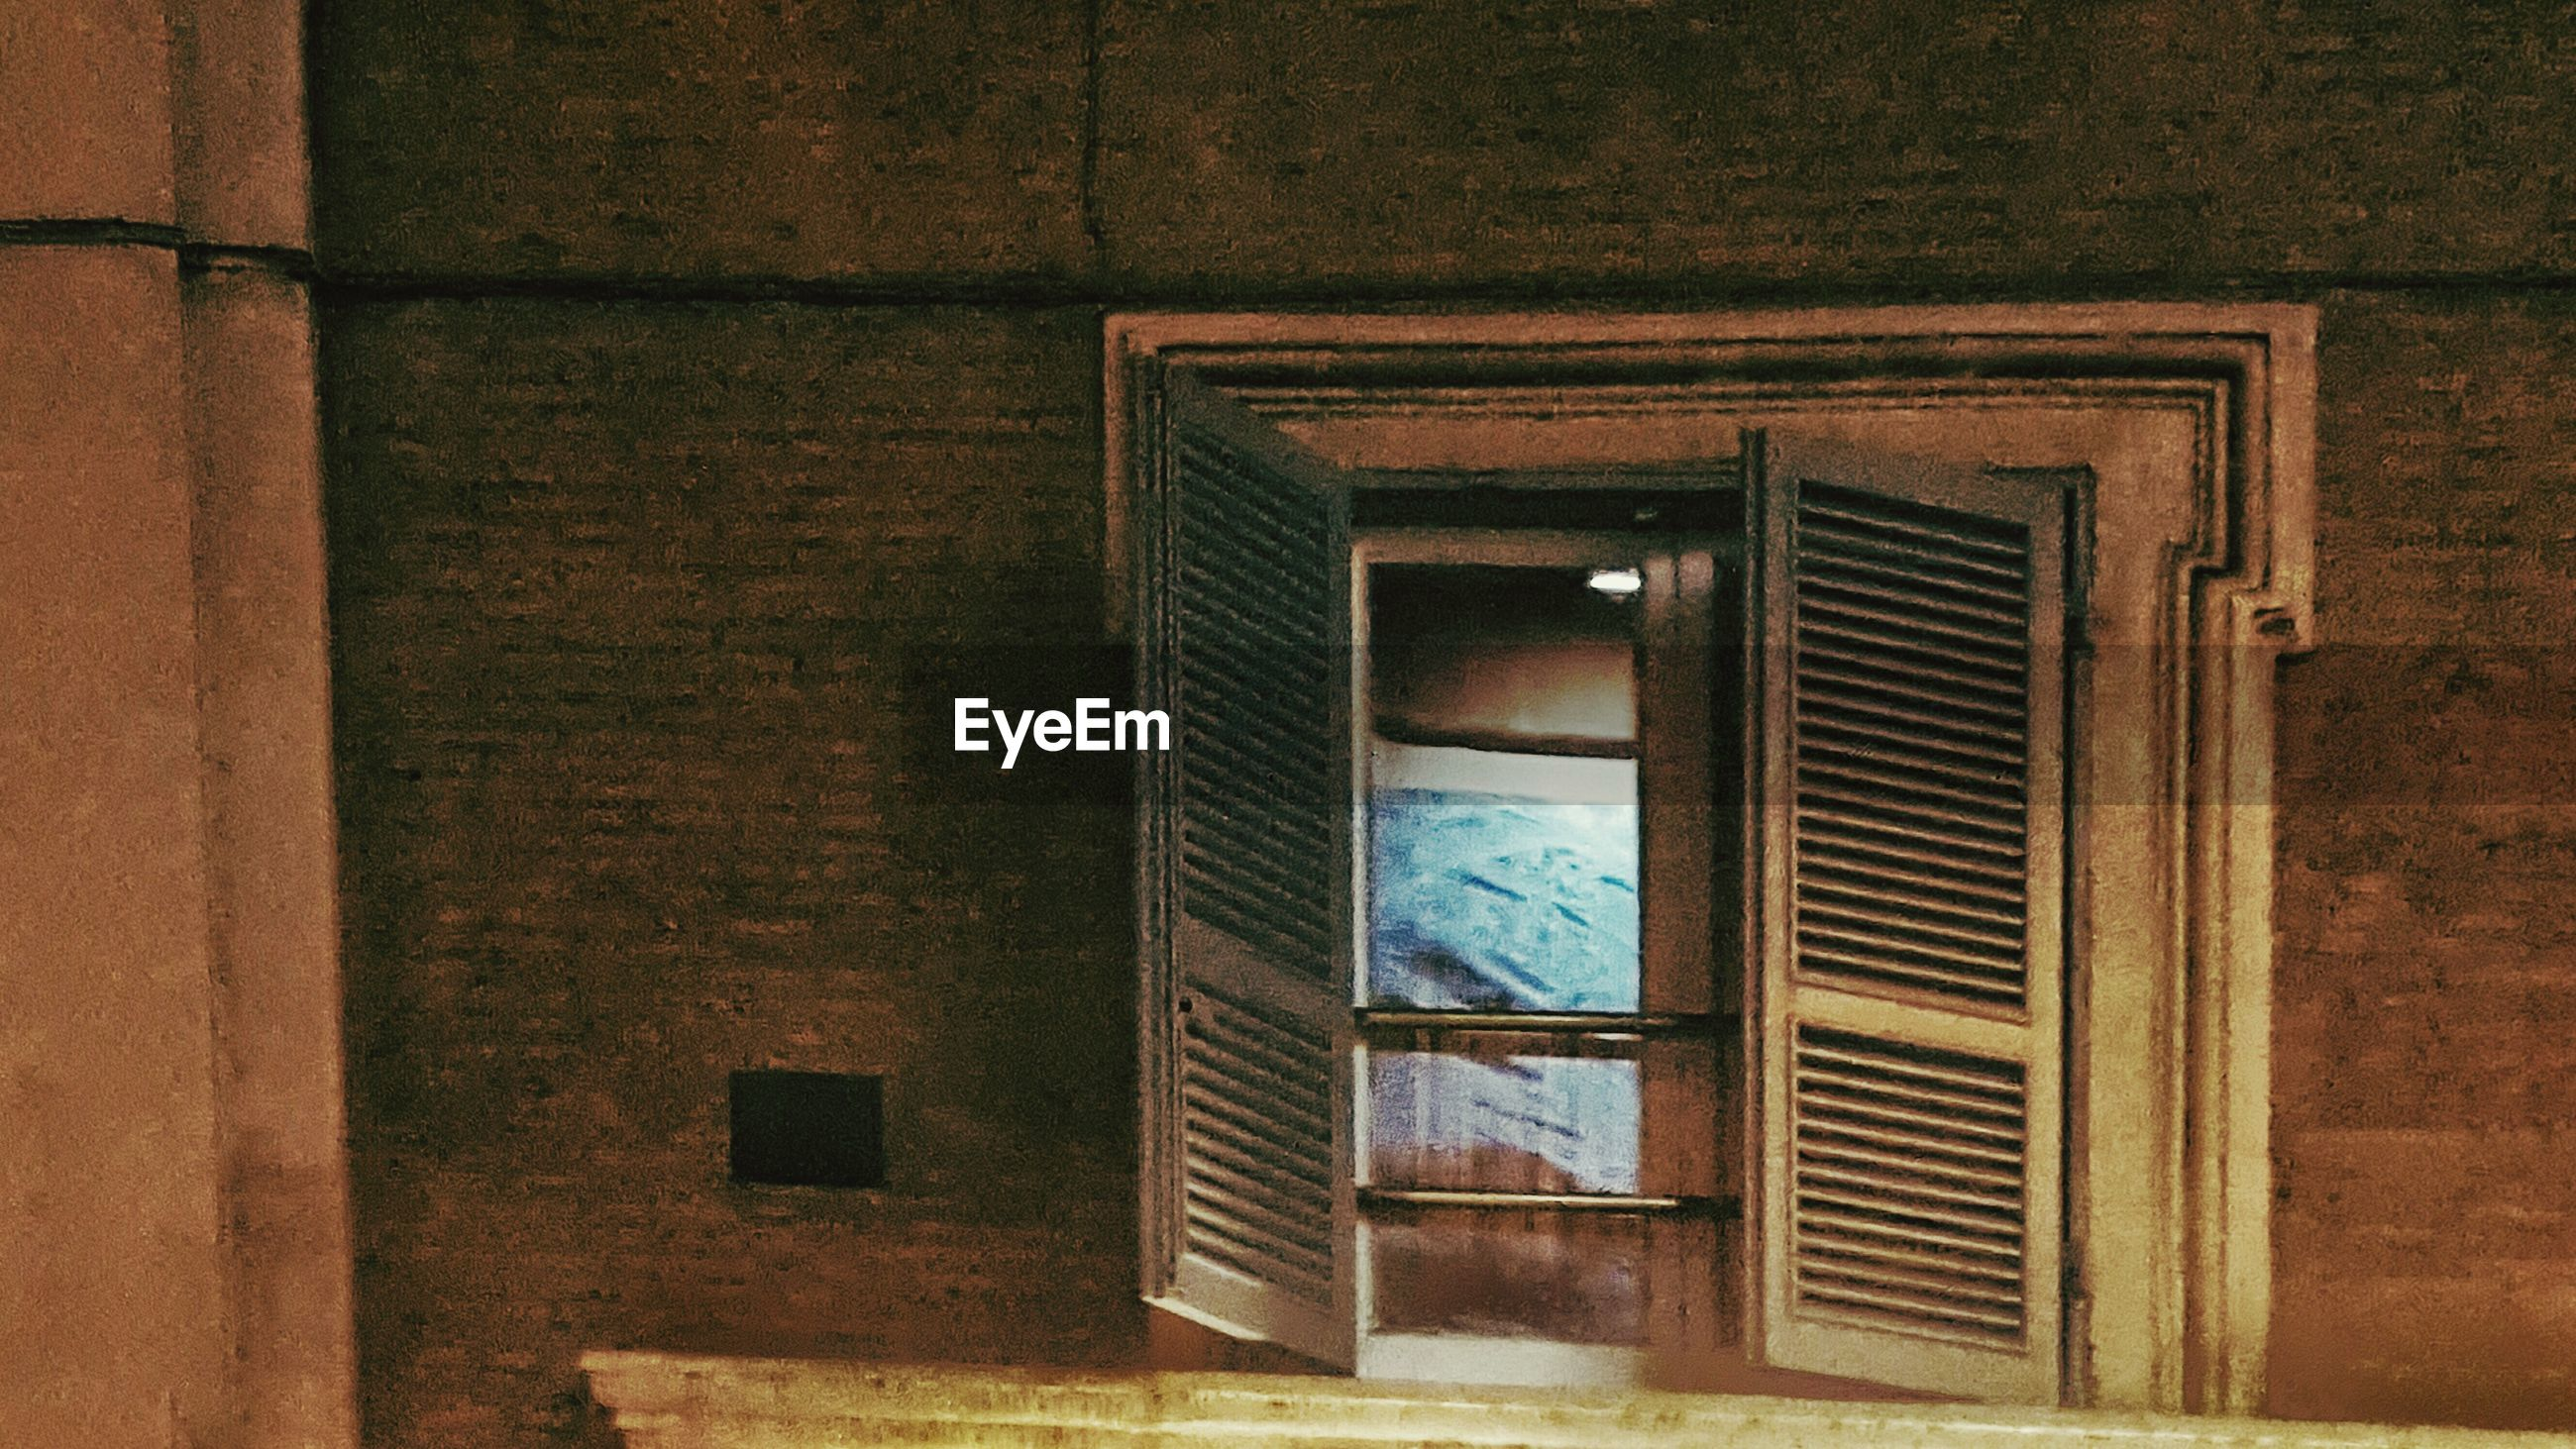 architecture, built structure, building exterior, window, closed, door, house, wall - building feature, brick wall, wood - material, building, wall, pattern, residential structure, no people, day, sunlight, residential building, outdoors, entrance